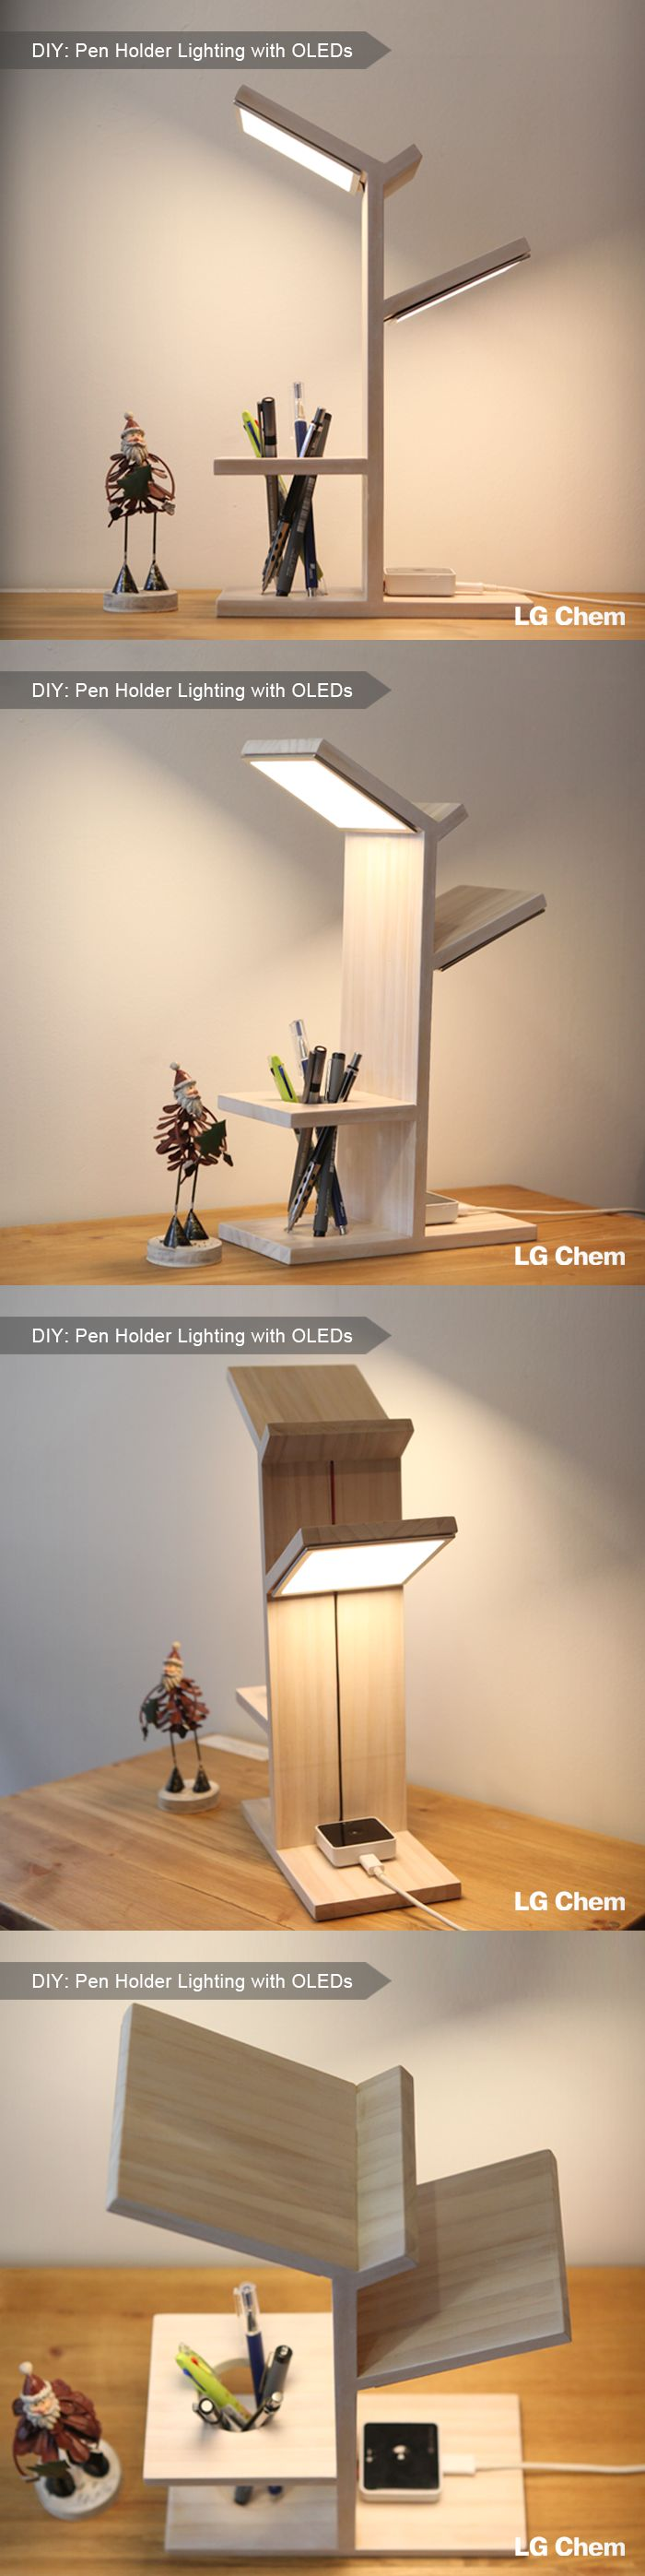 A lamp and pen holder in one made with the 2 100x100mm OLED panels and driver included in an LG Display DIY kit. (Designed by Jung hoon Ko)  Check out Organic Lights at http://www.organic-lights.com/en/lg-display-do-it-yourself-kit.html